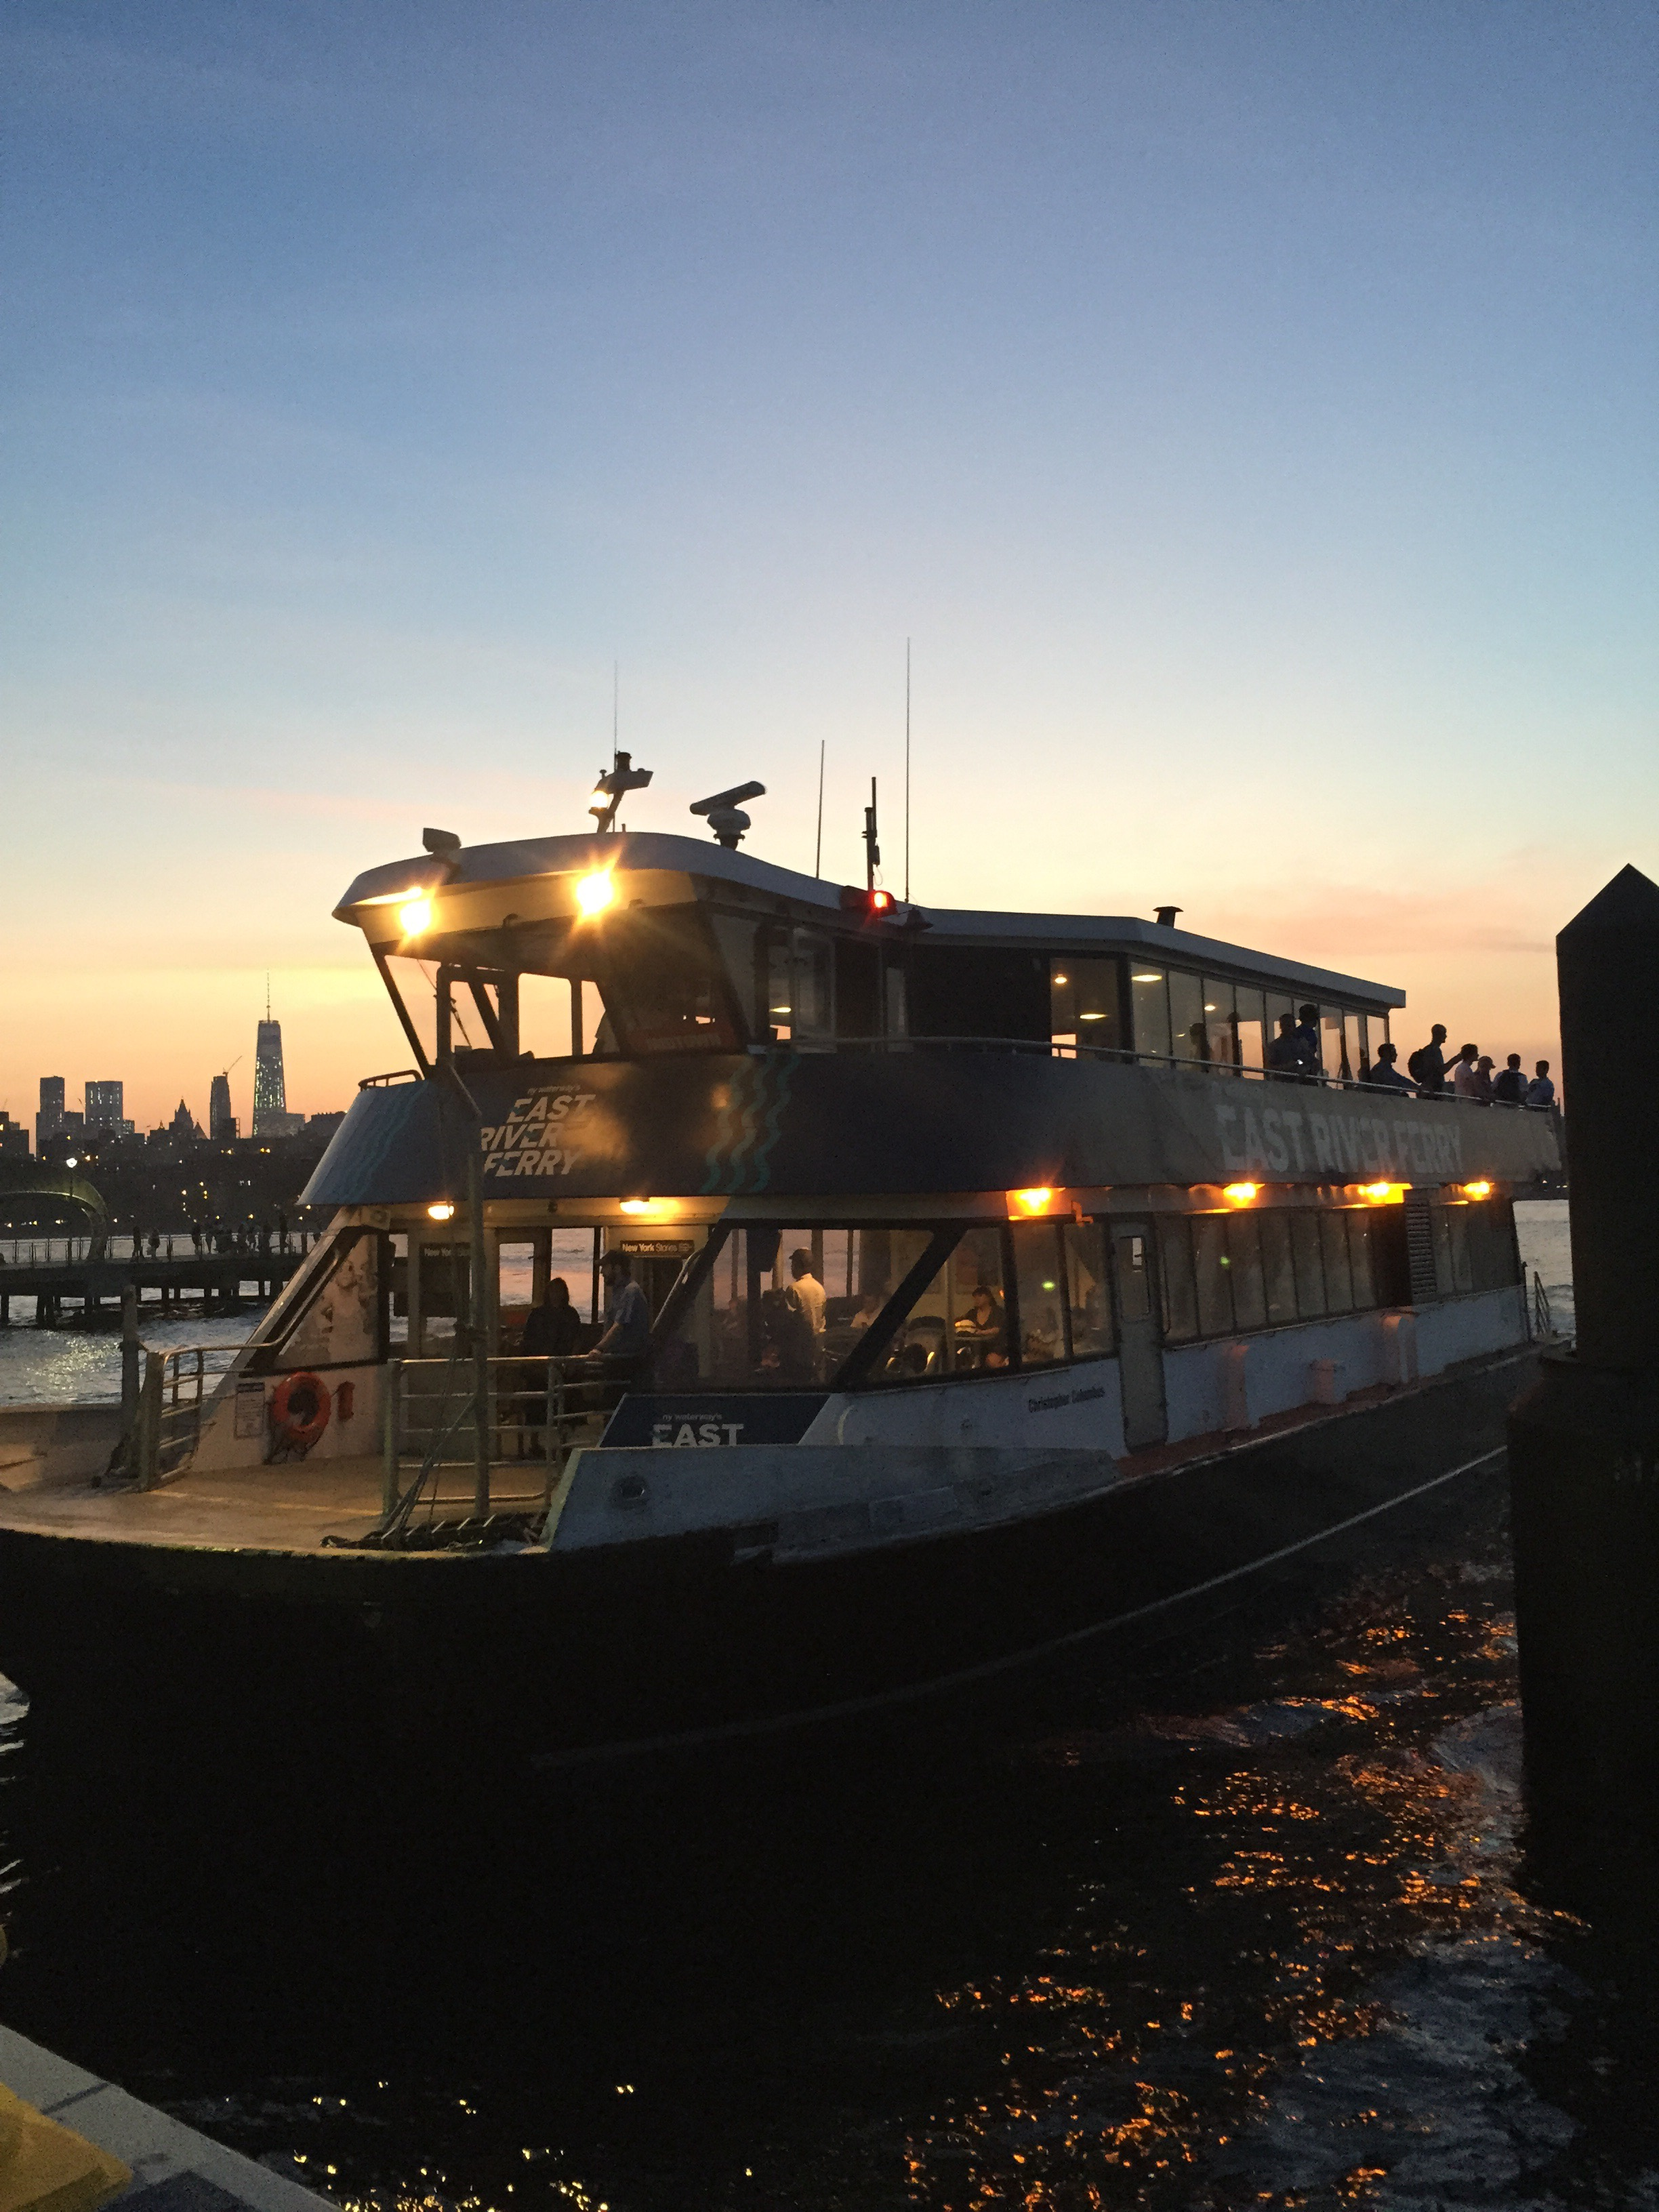 east-river ferry